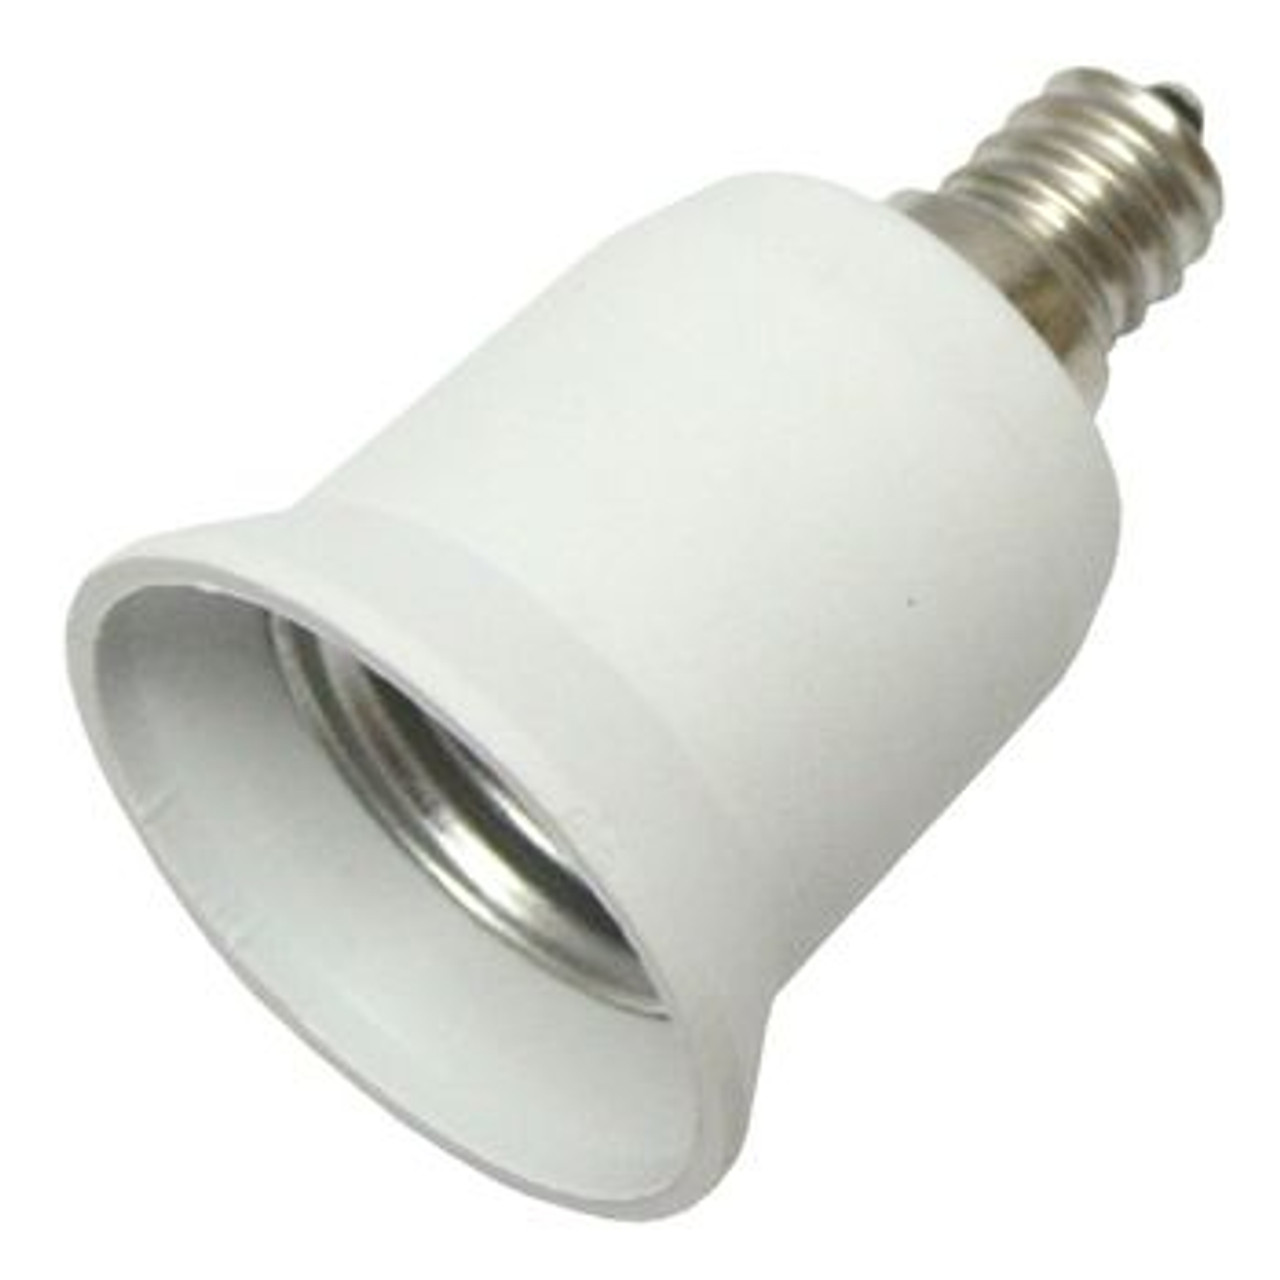 E12 to E26 Chandelier Light Socket Adapter - Pride LED Lighting